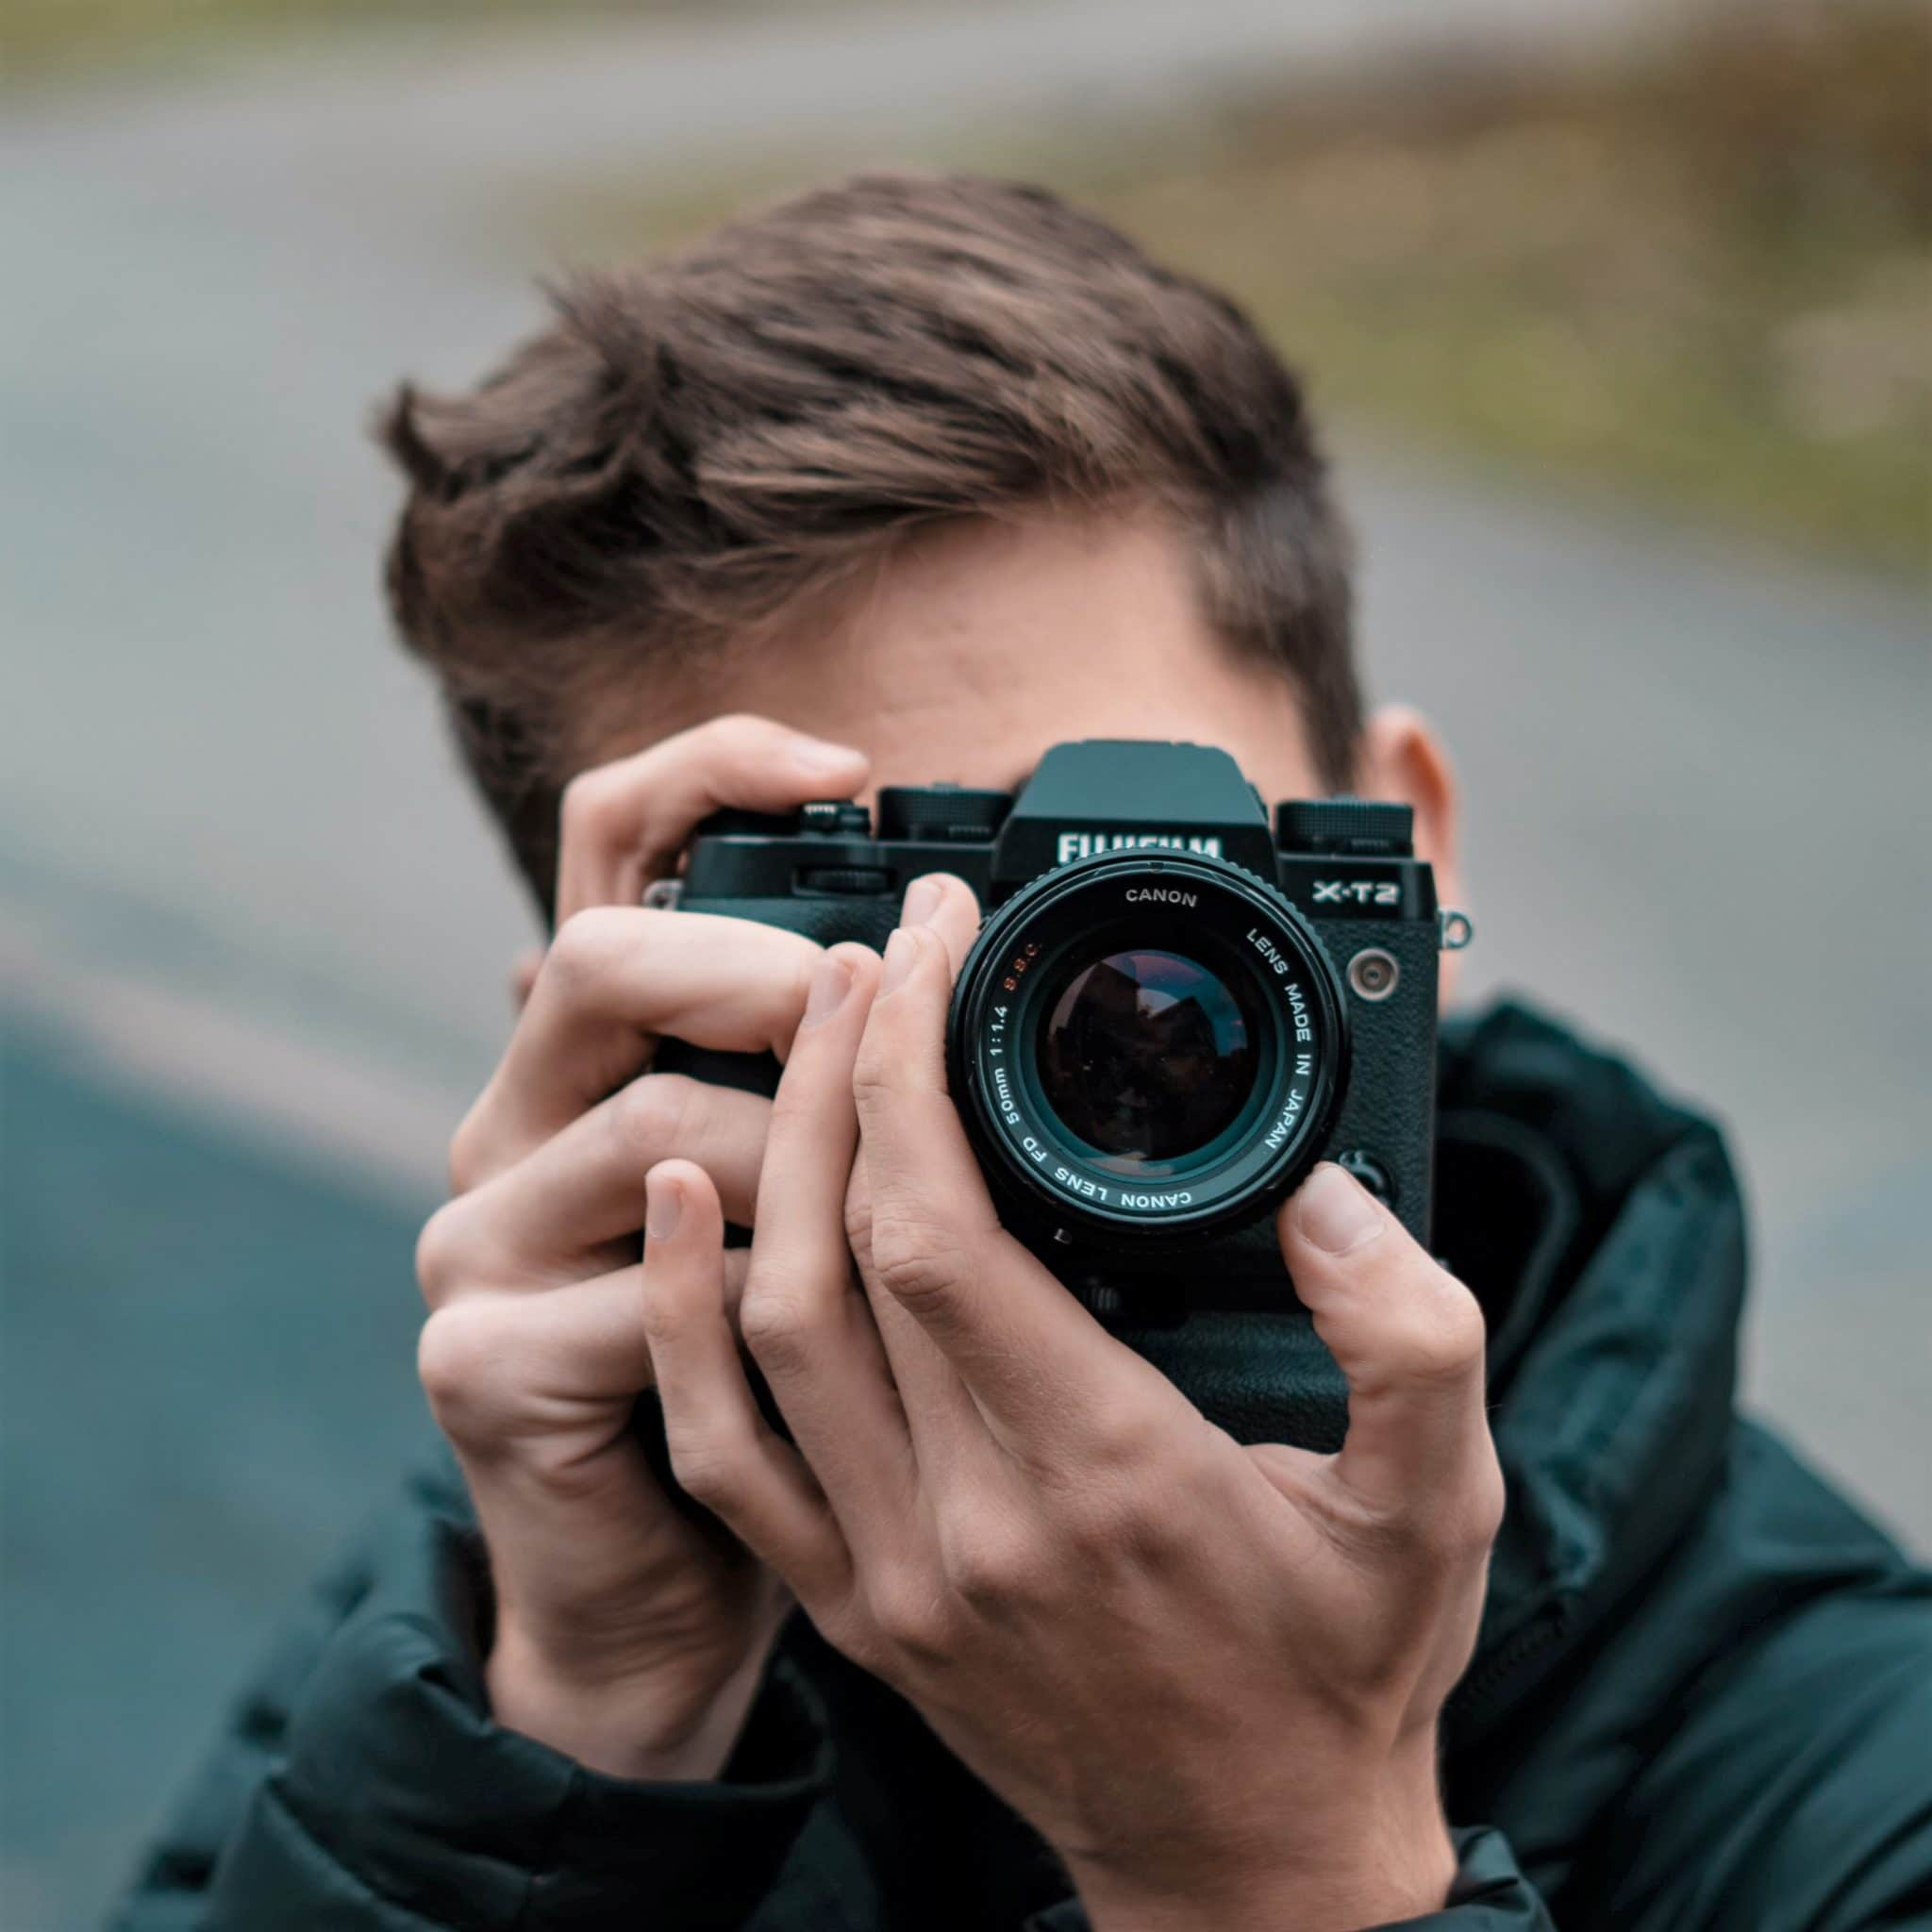 Man holding up DSLR camera in front of his face to take a photo